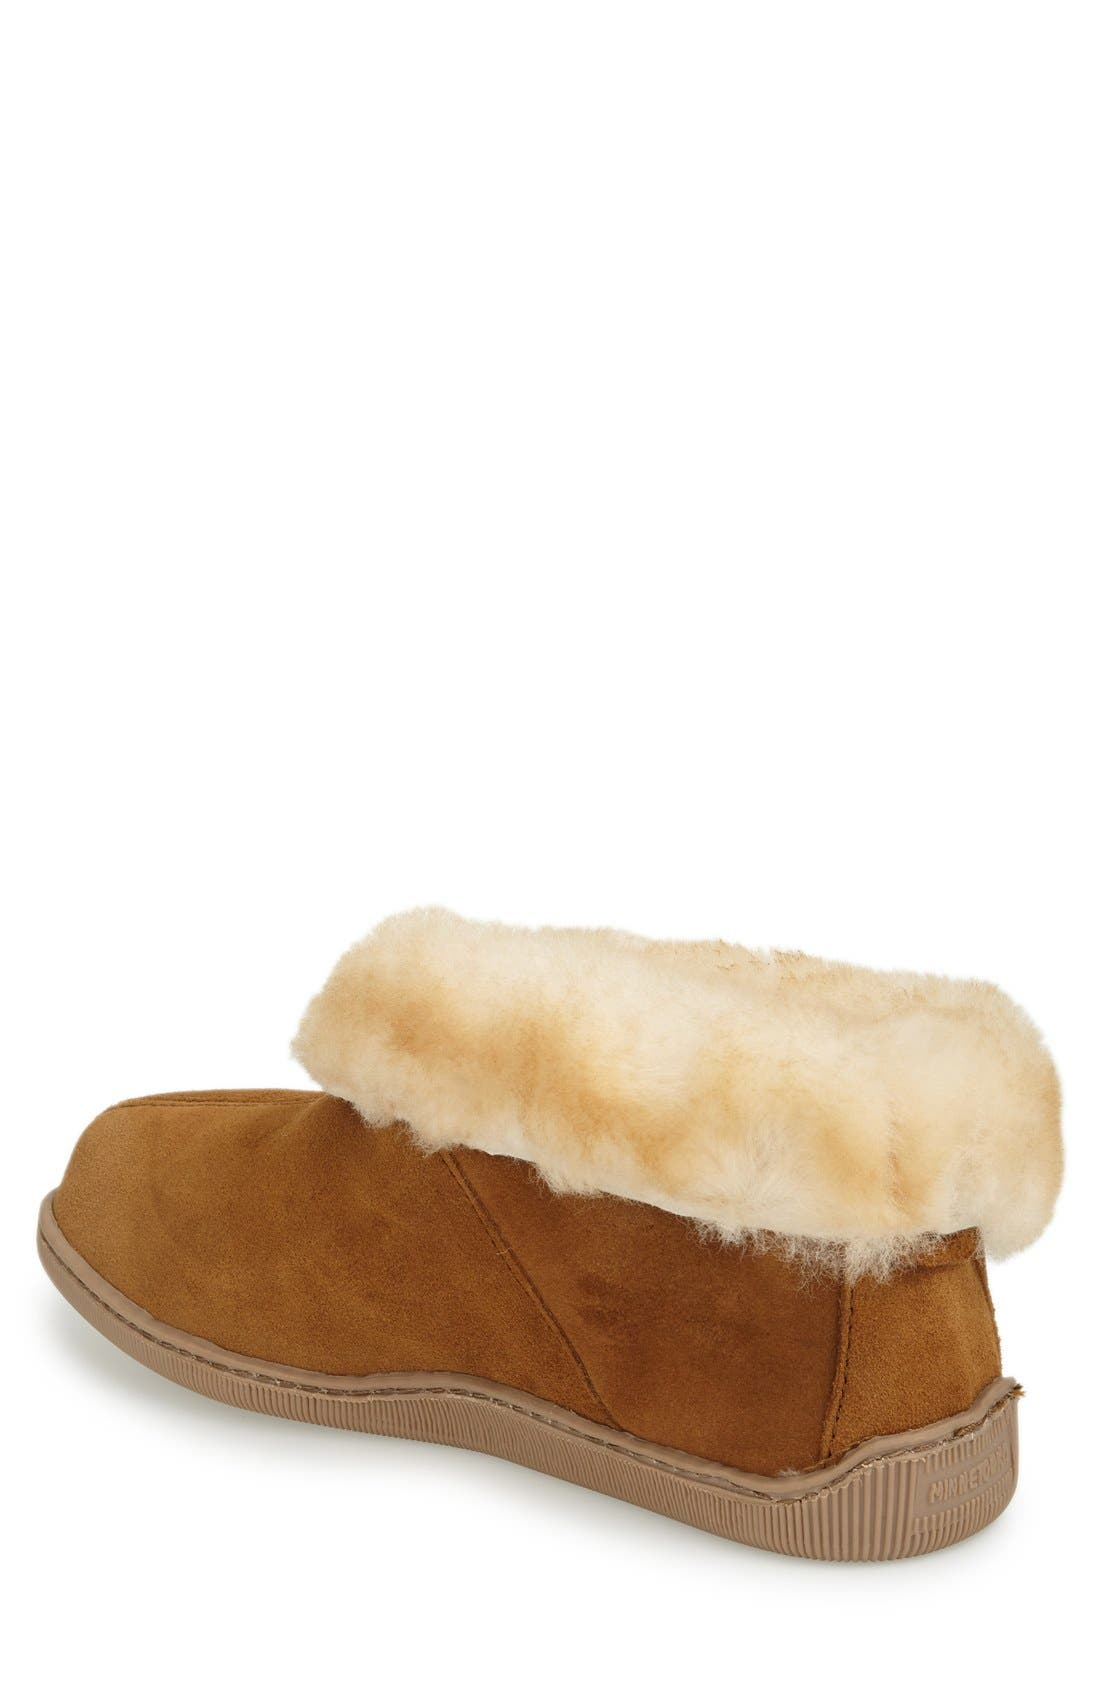 Genuine Shearling Lined Ankle Boot,                             Alternate thumbnail 2, color,                             GOLDEN TAN